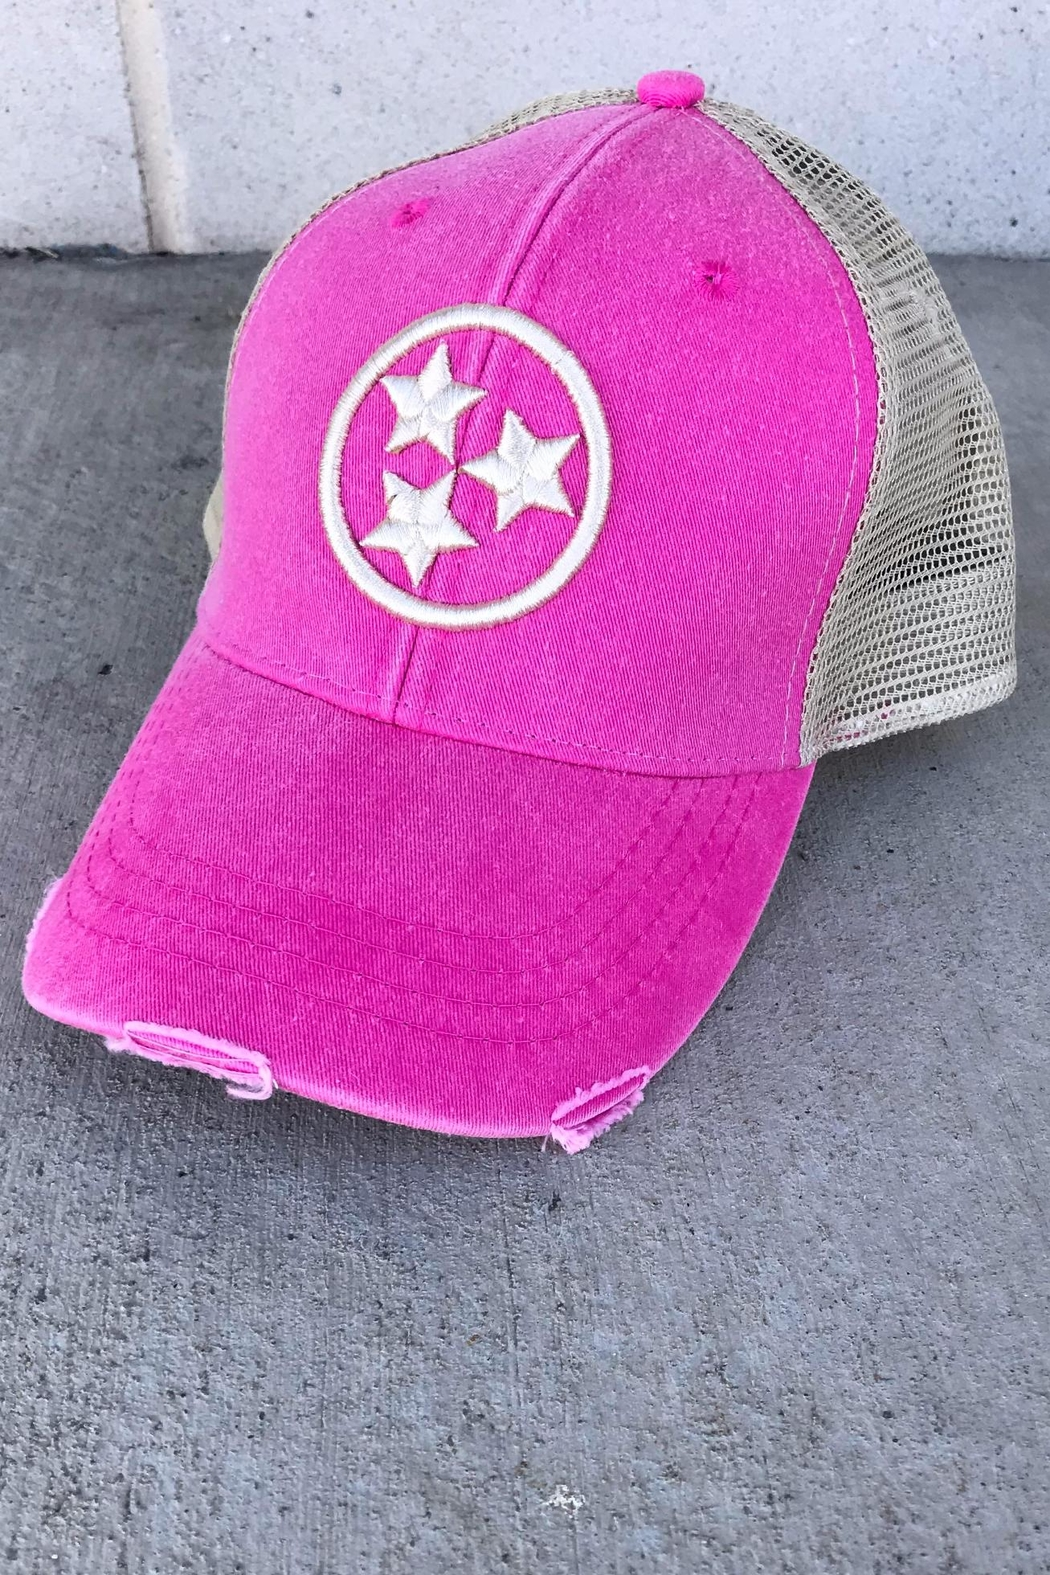 39c19ad4 Albers Design Tristar Trucker Hat from Nashville by JeweLL Fashion ...